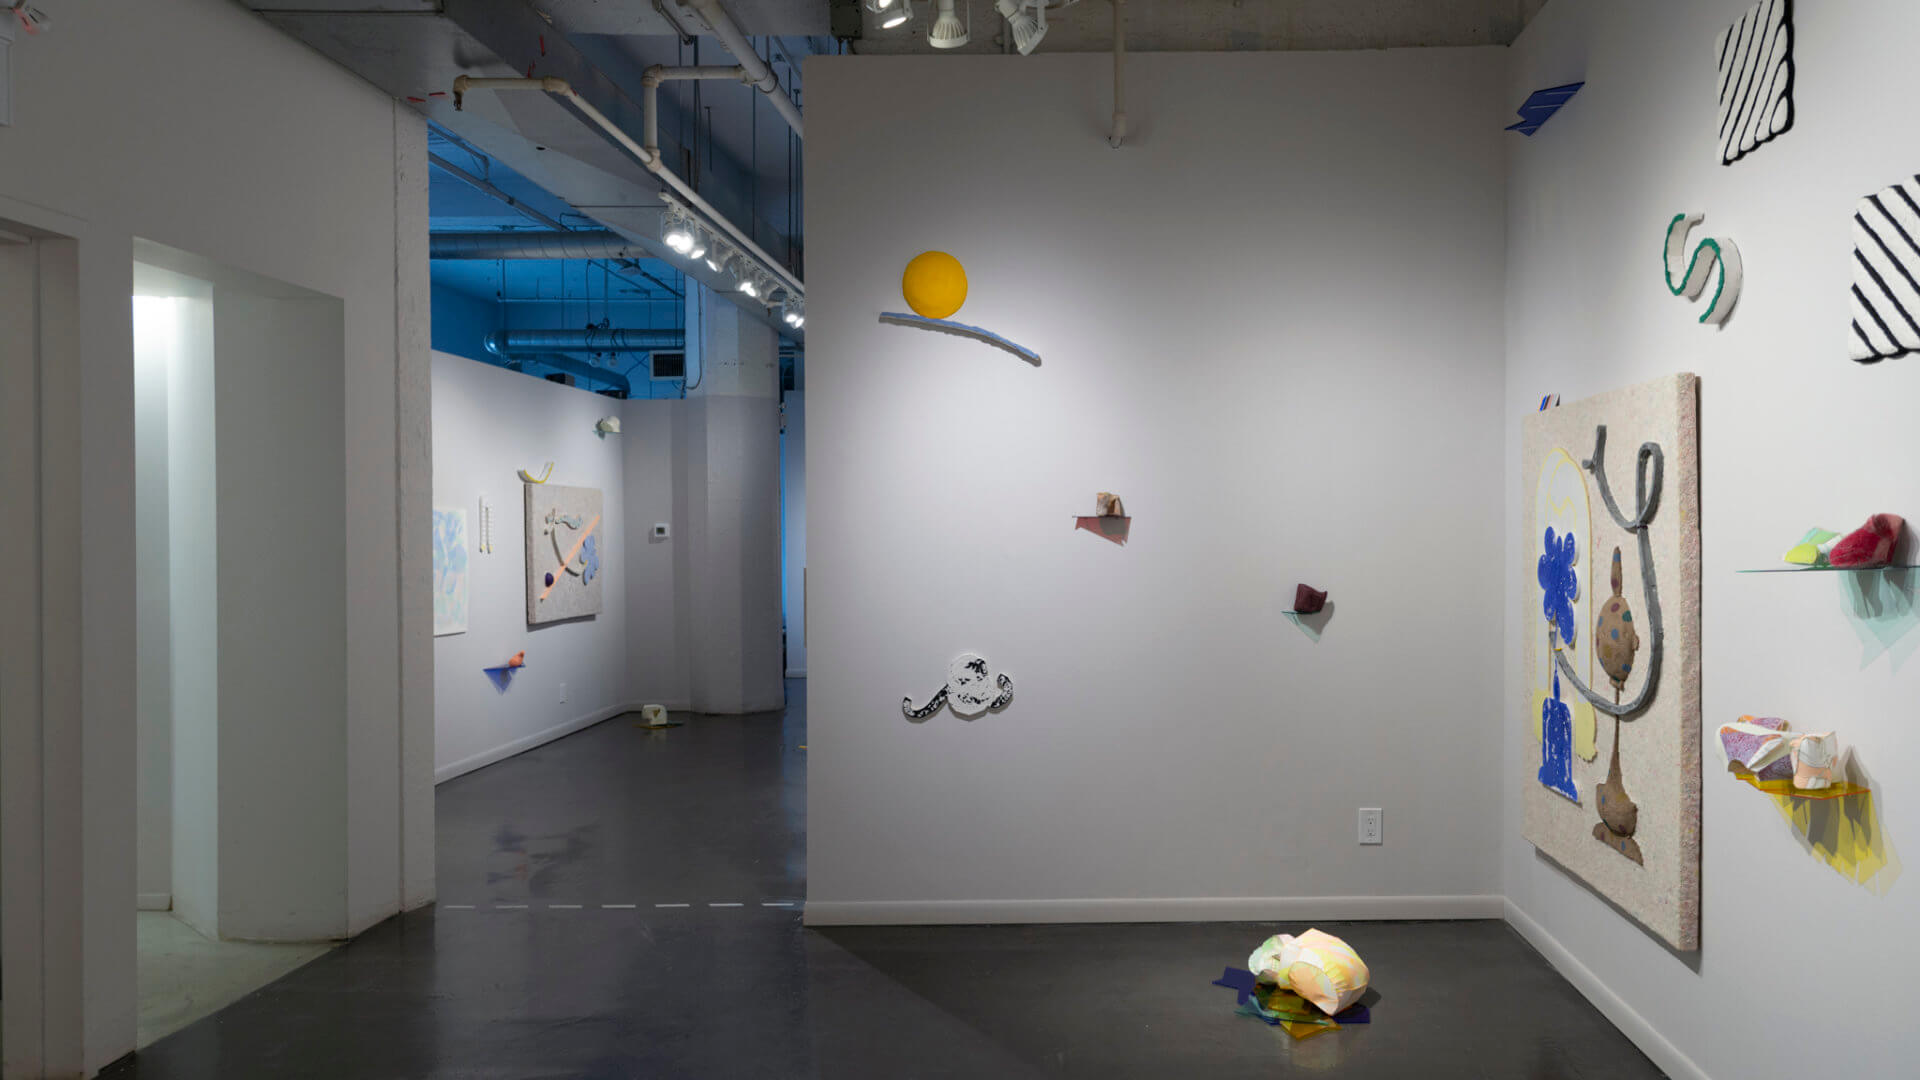 Installation view of Playground Chitchat. Image credit: Sarah Fuller.